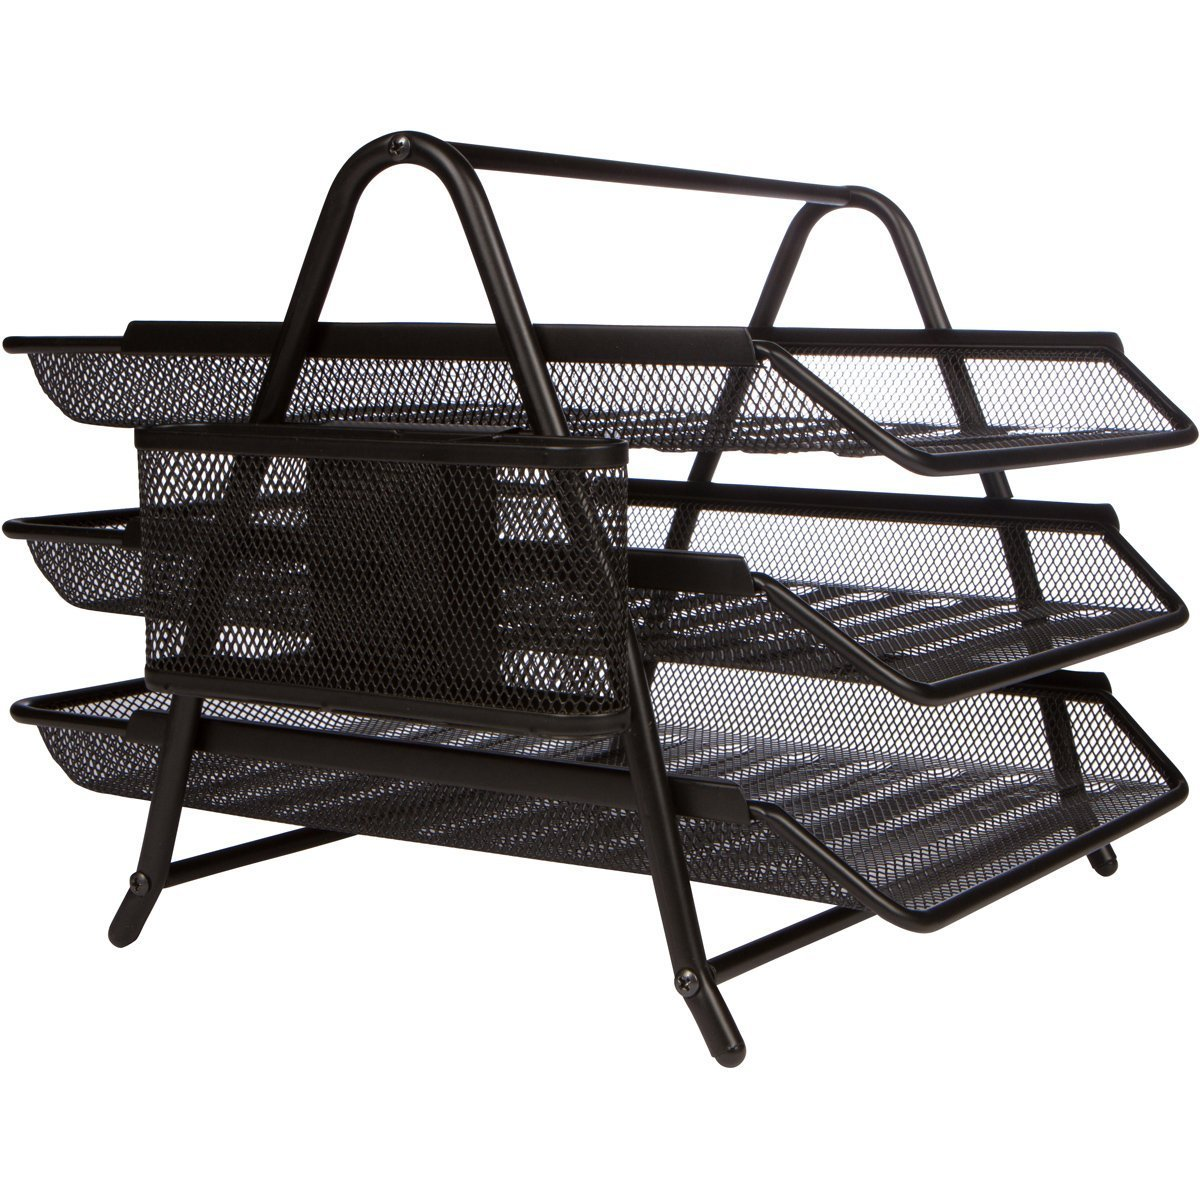 Modo MO-2003 3-tier Metal Mesh Tray Black (pc)